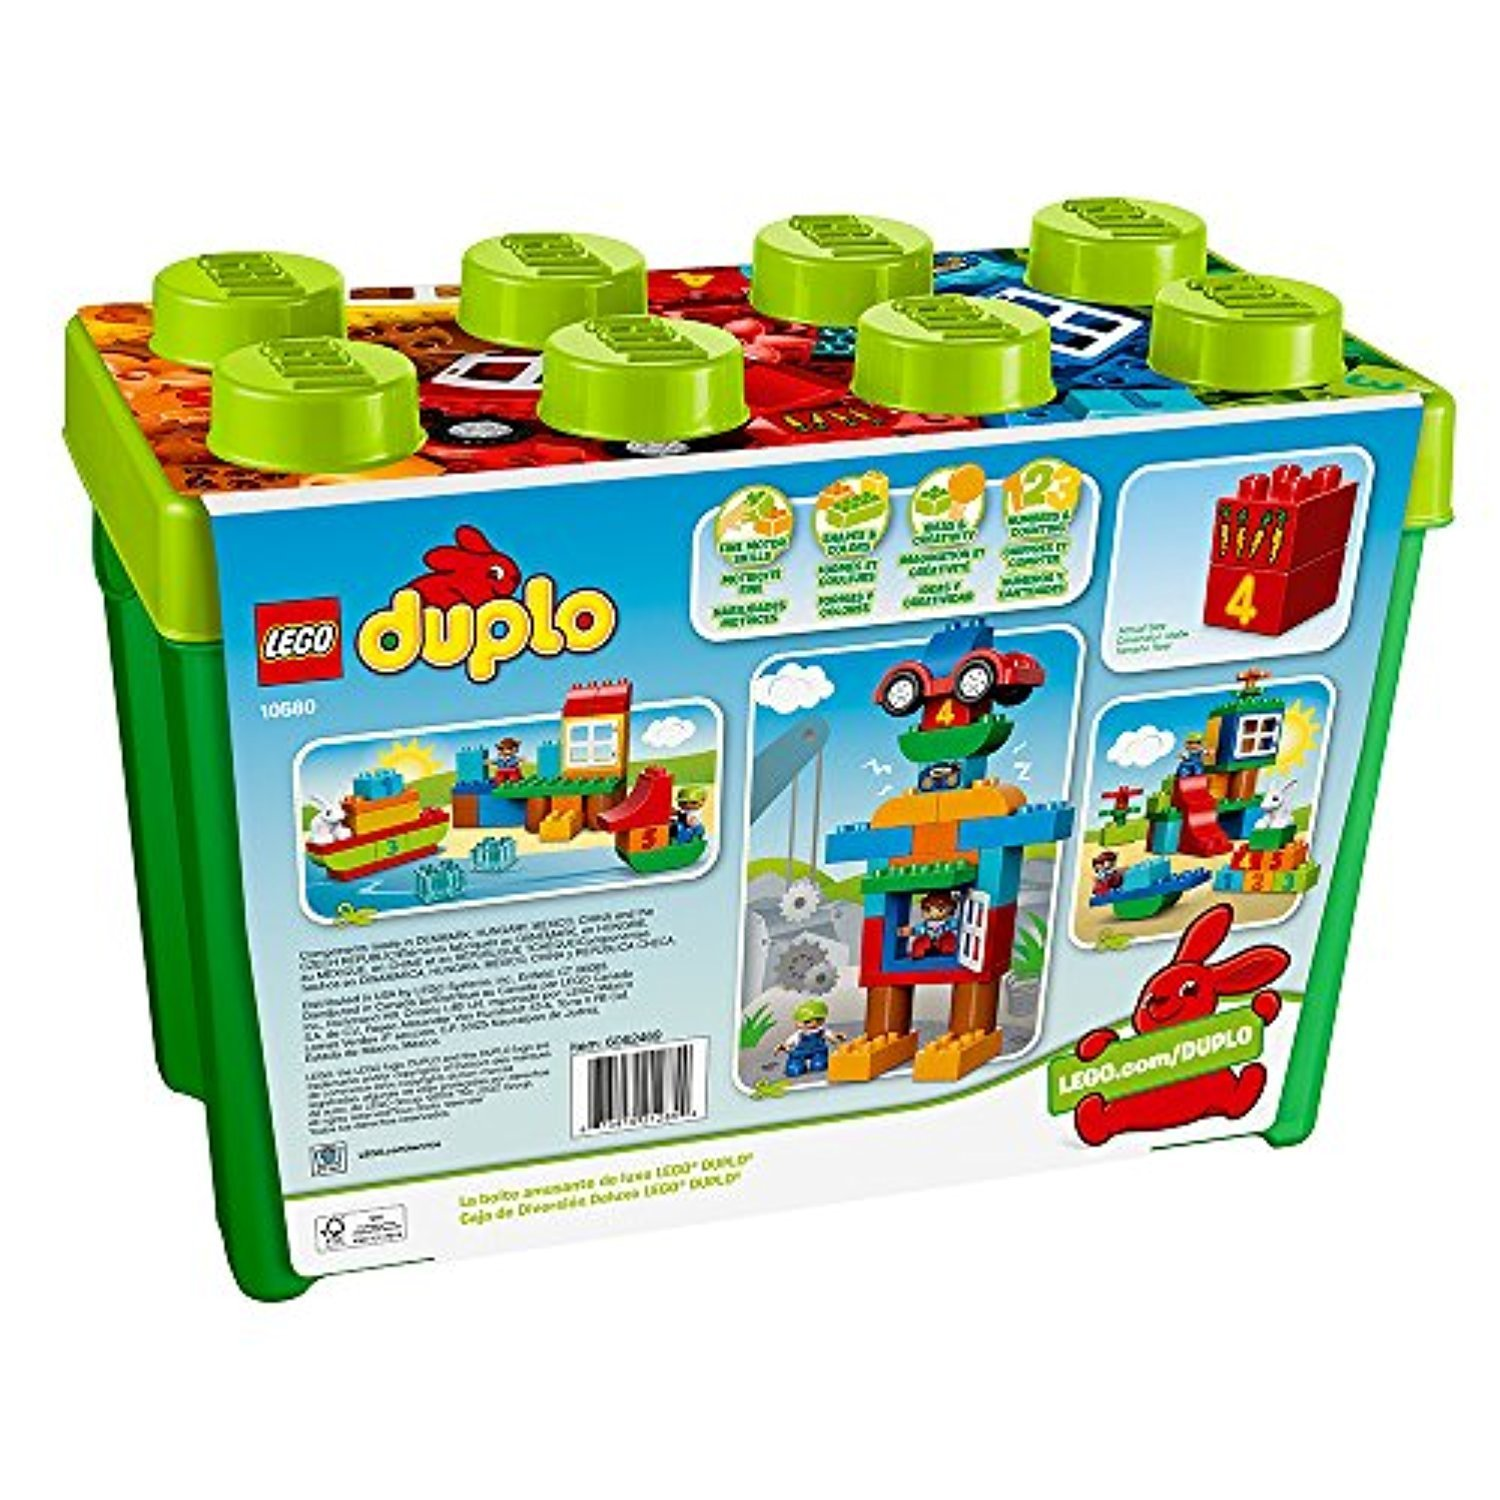 LEGO DUPLO Deluxe Box of fun 10580 Preschool Creative Play